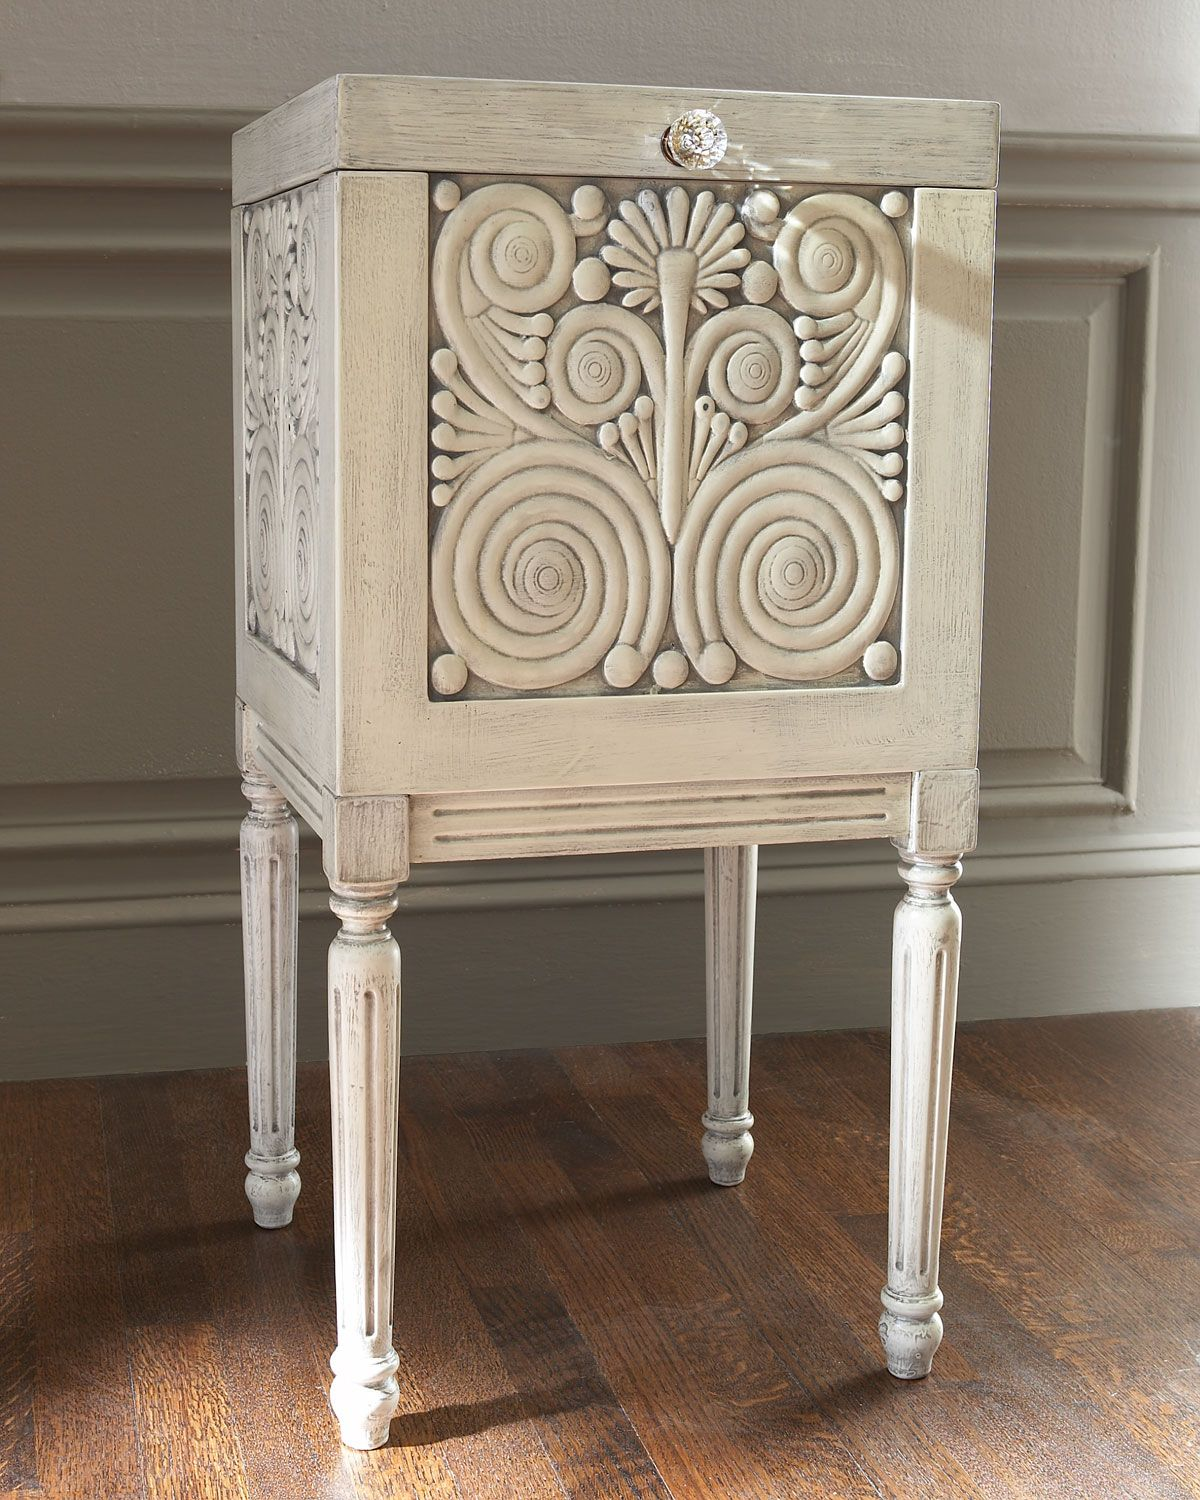 Superb White Carved File Box Looking For A File Cabinet That Will Work With Your  Cottage Decor? This Carved File Box Will Be A Beautiful Accent To Any Room  And ...